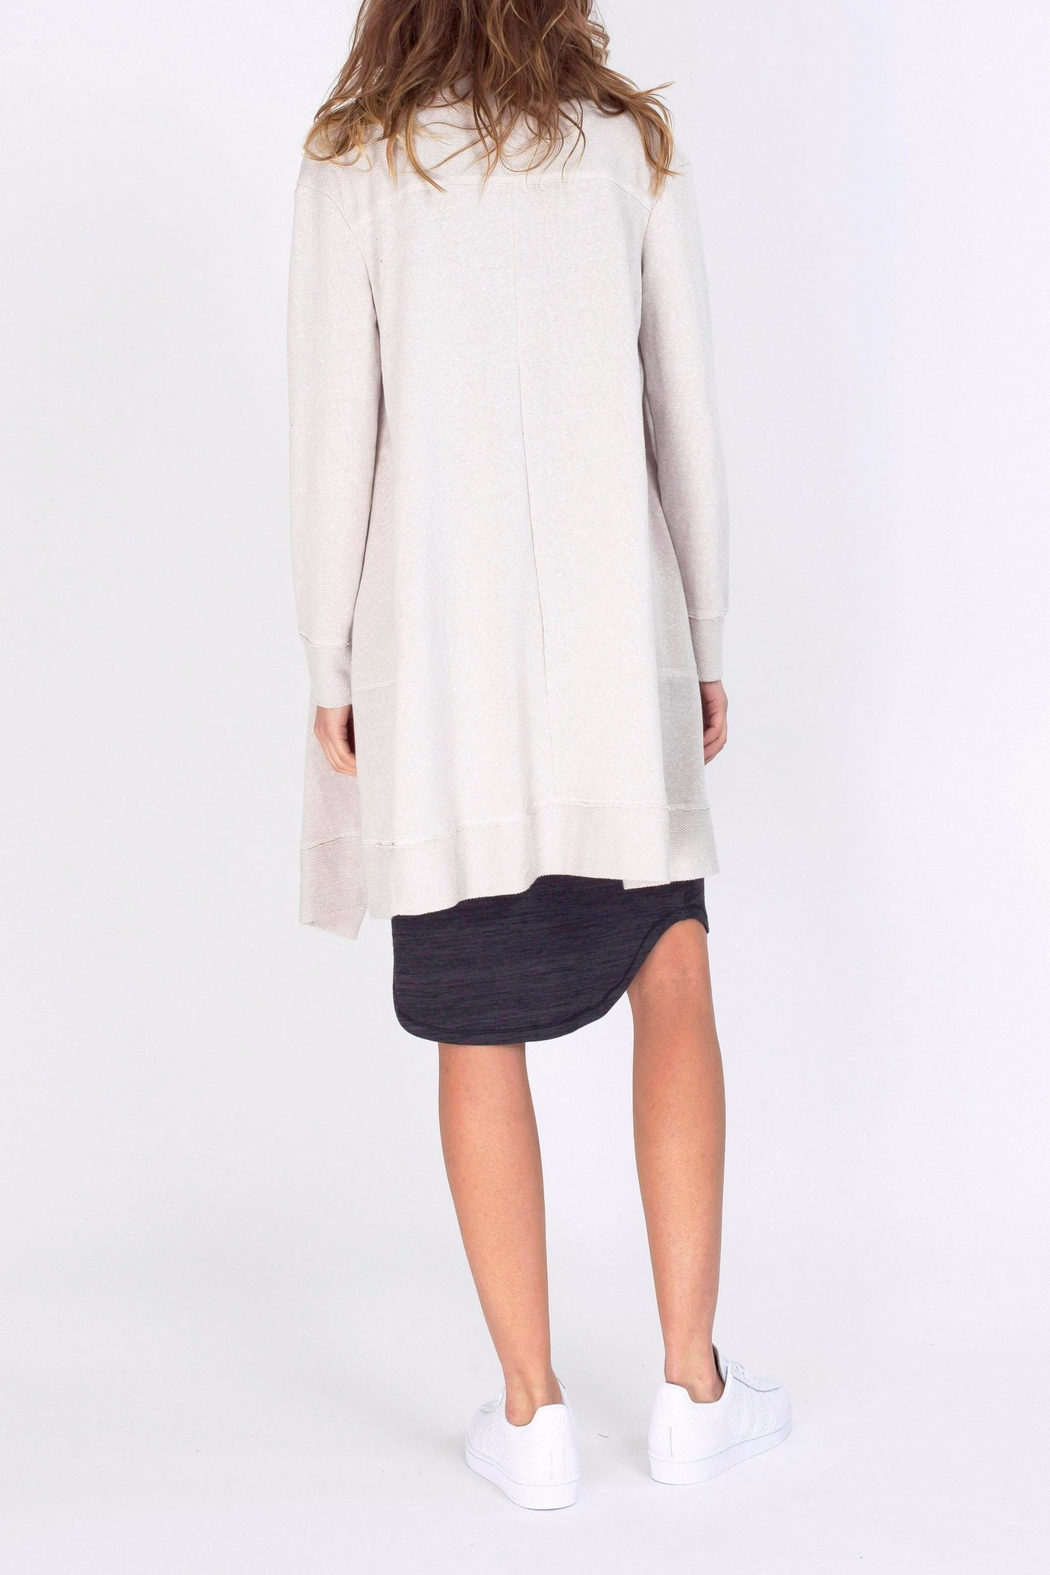 Gentle Fawn Knee Length Cardigan - Side Cropped Image